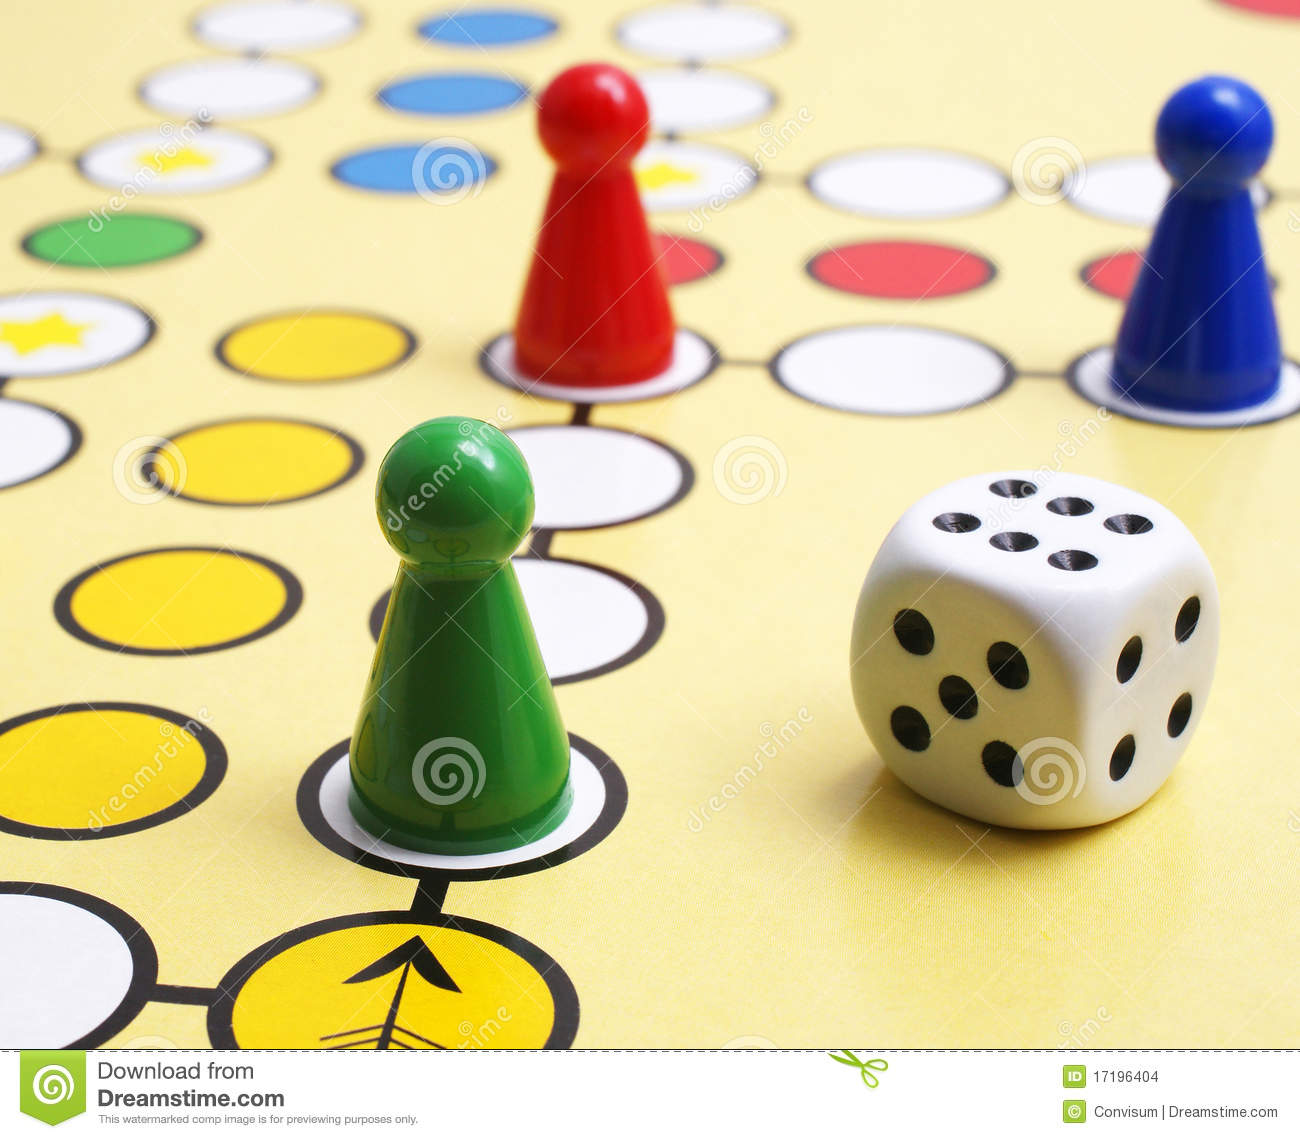 Board Game And Dice Stock Images - Image: 17196404